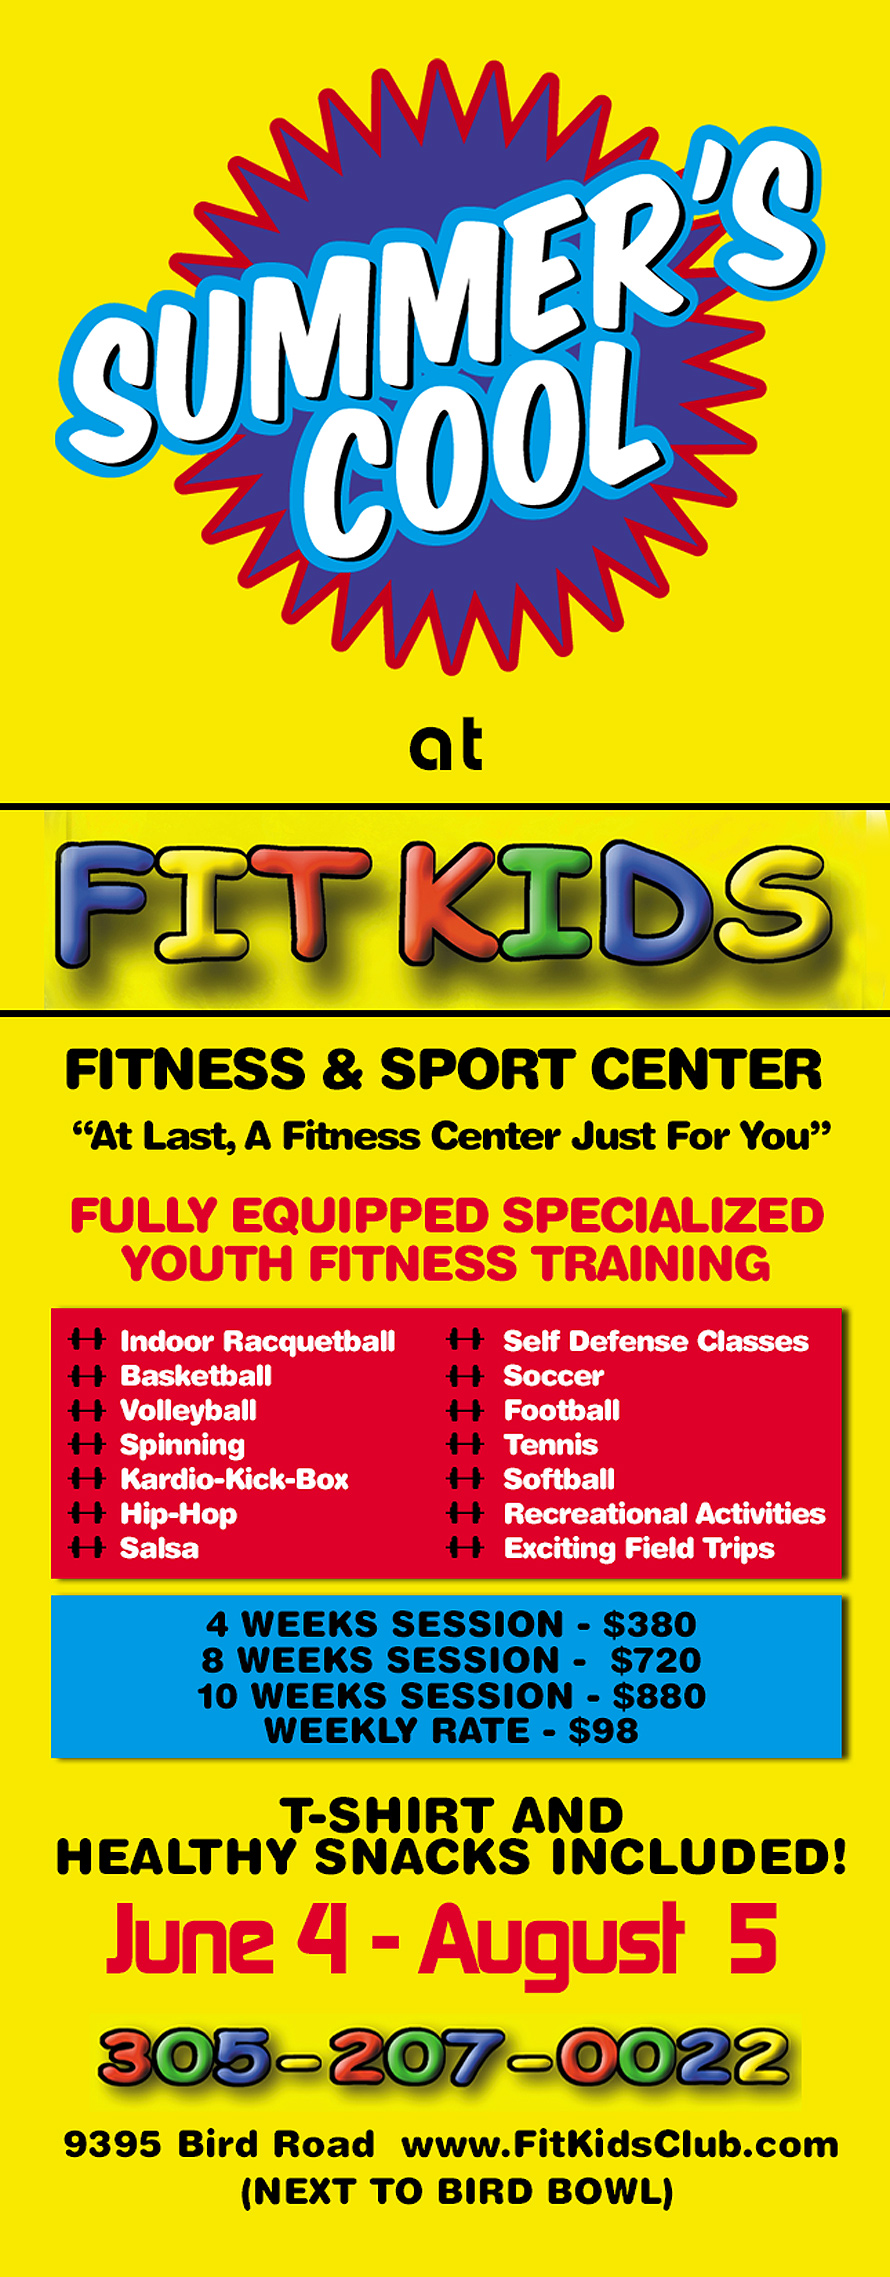 Summers Cool at Fitkids